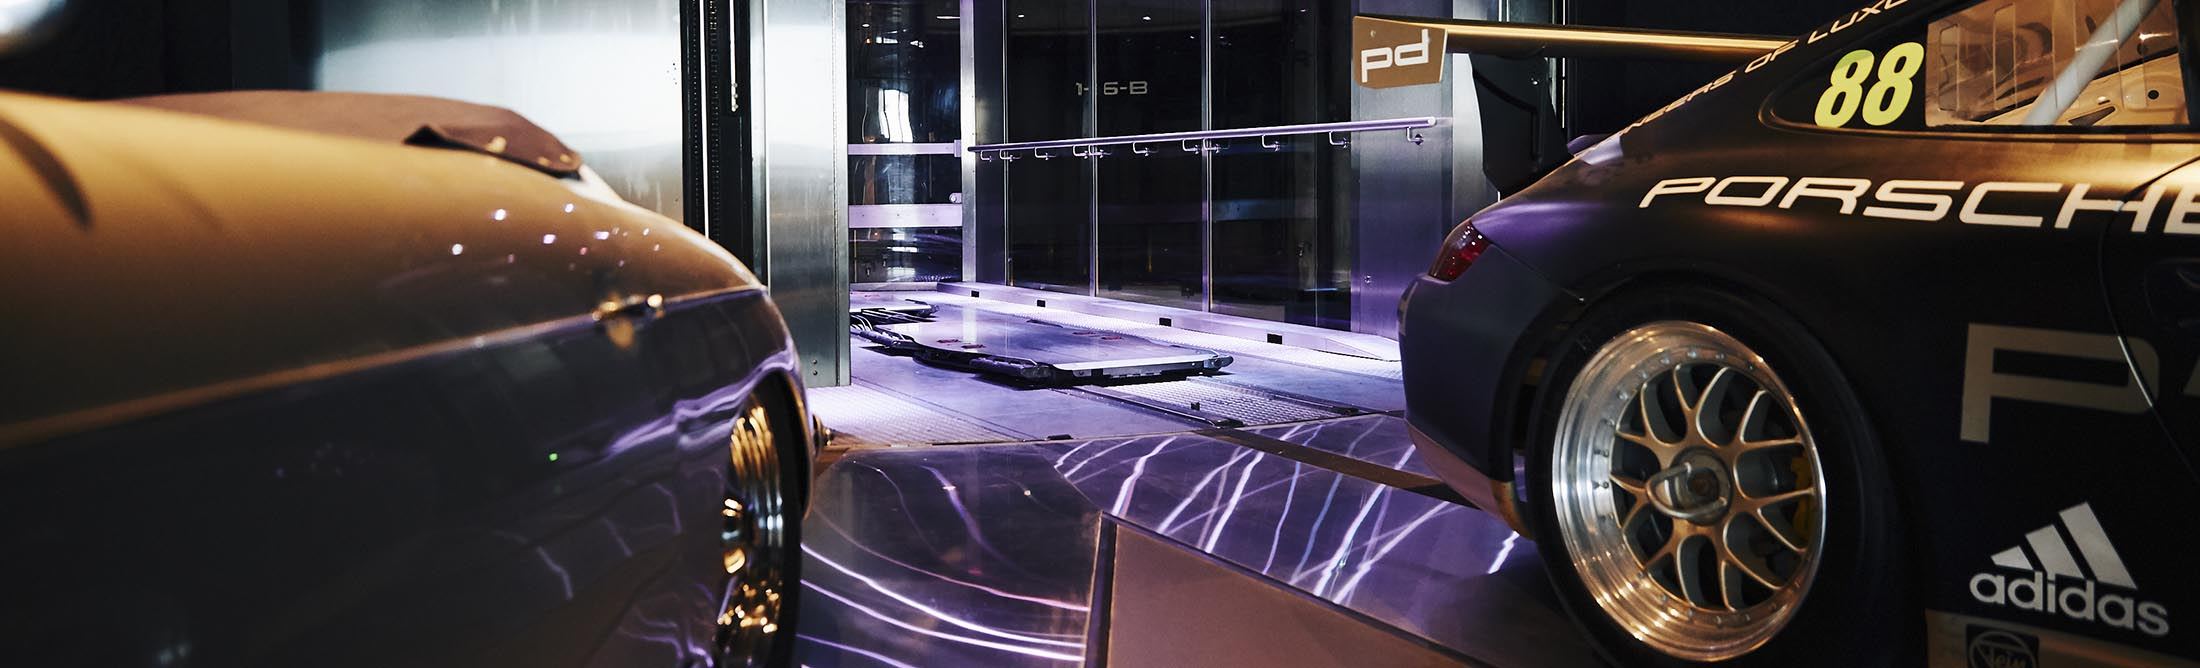 See What It's Like to Live Inside a Porsche-Branded Skyscraper